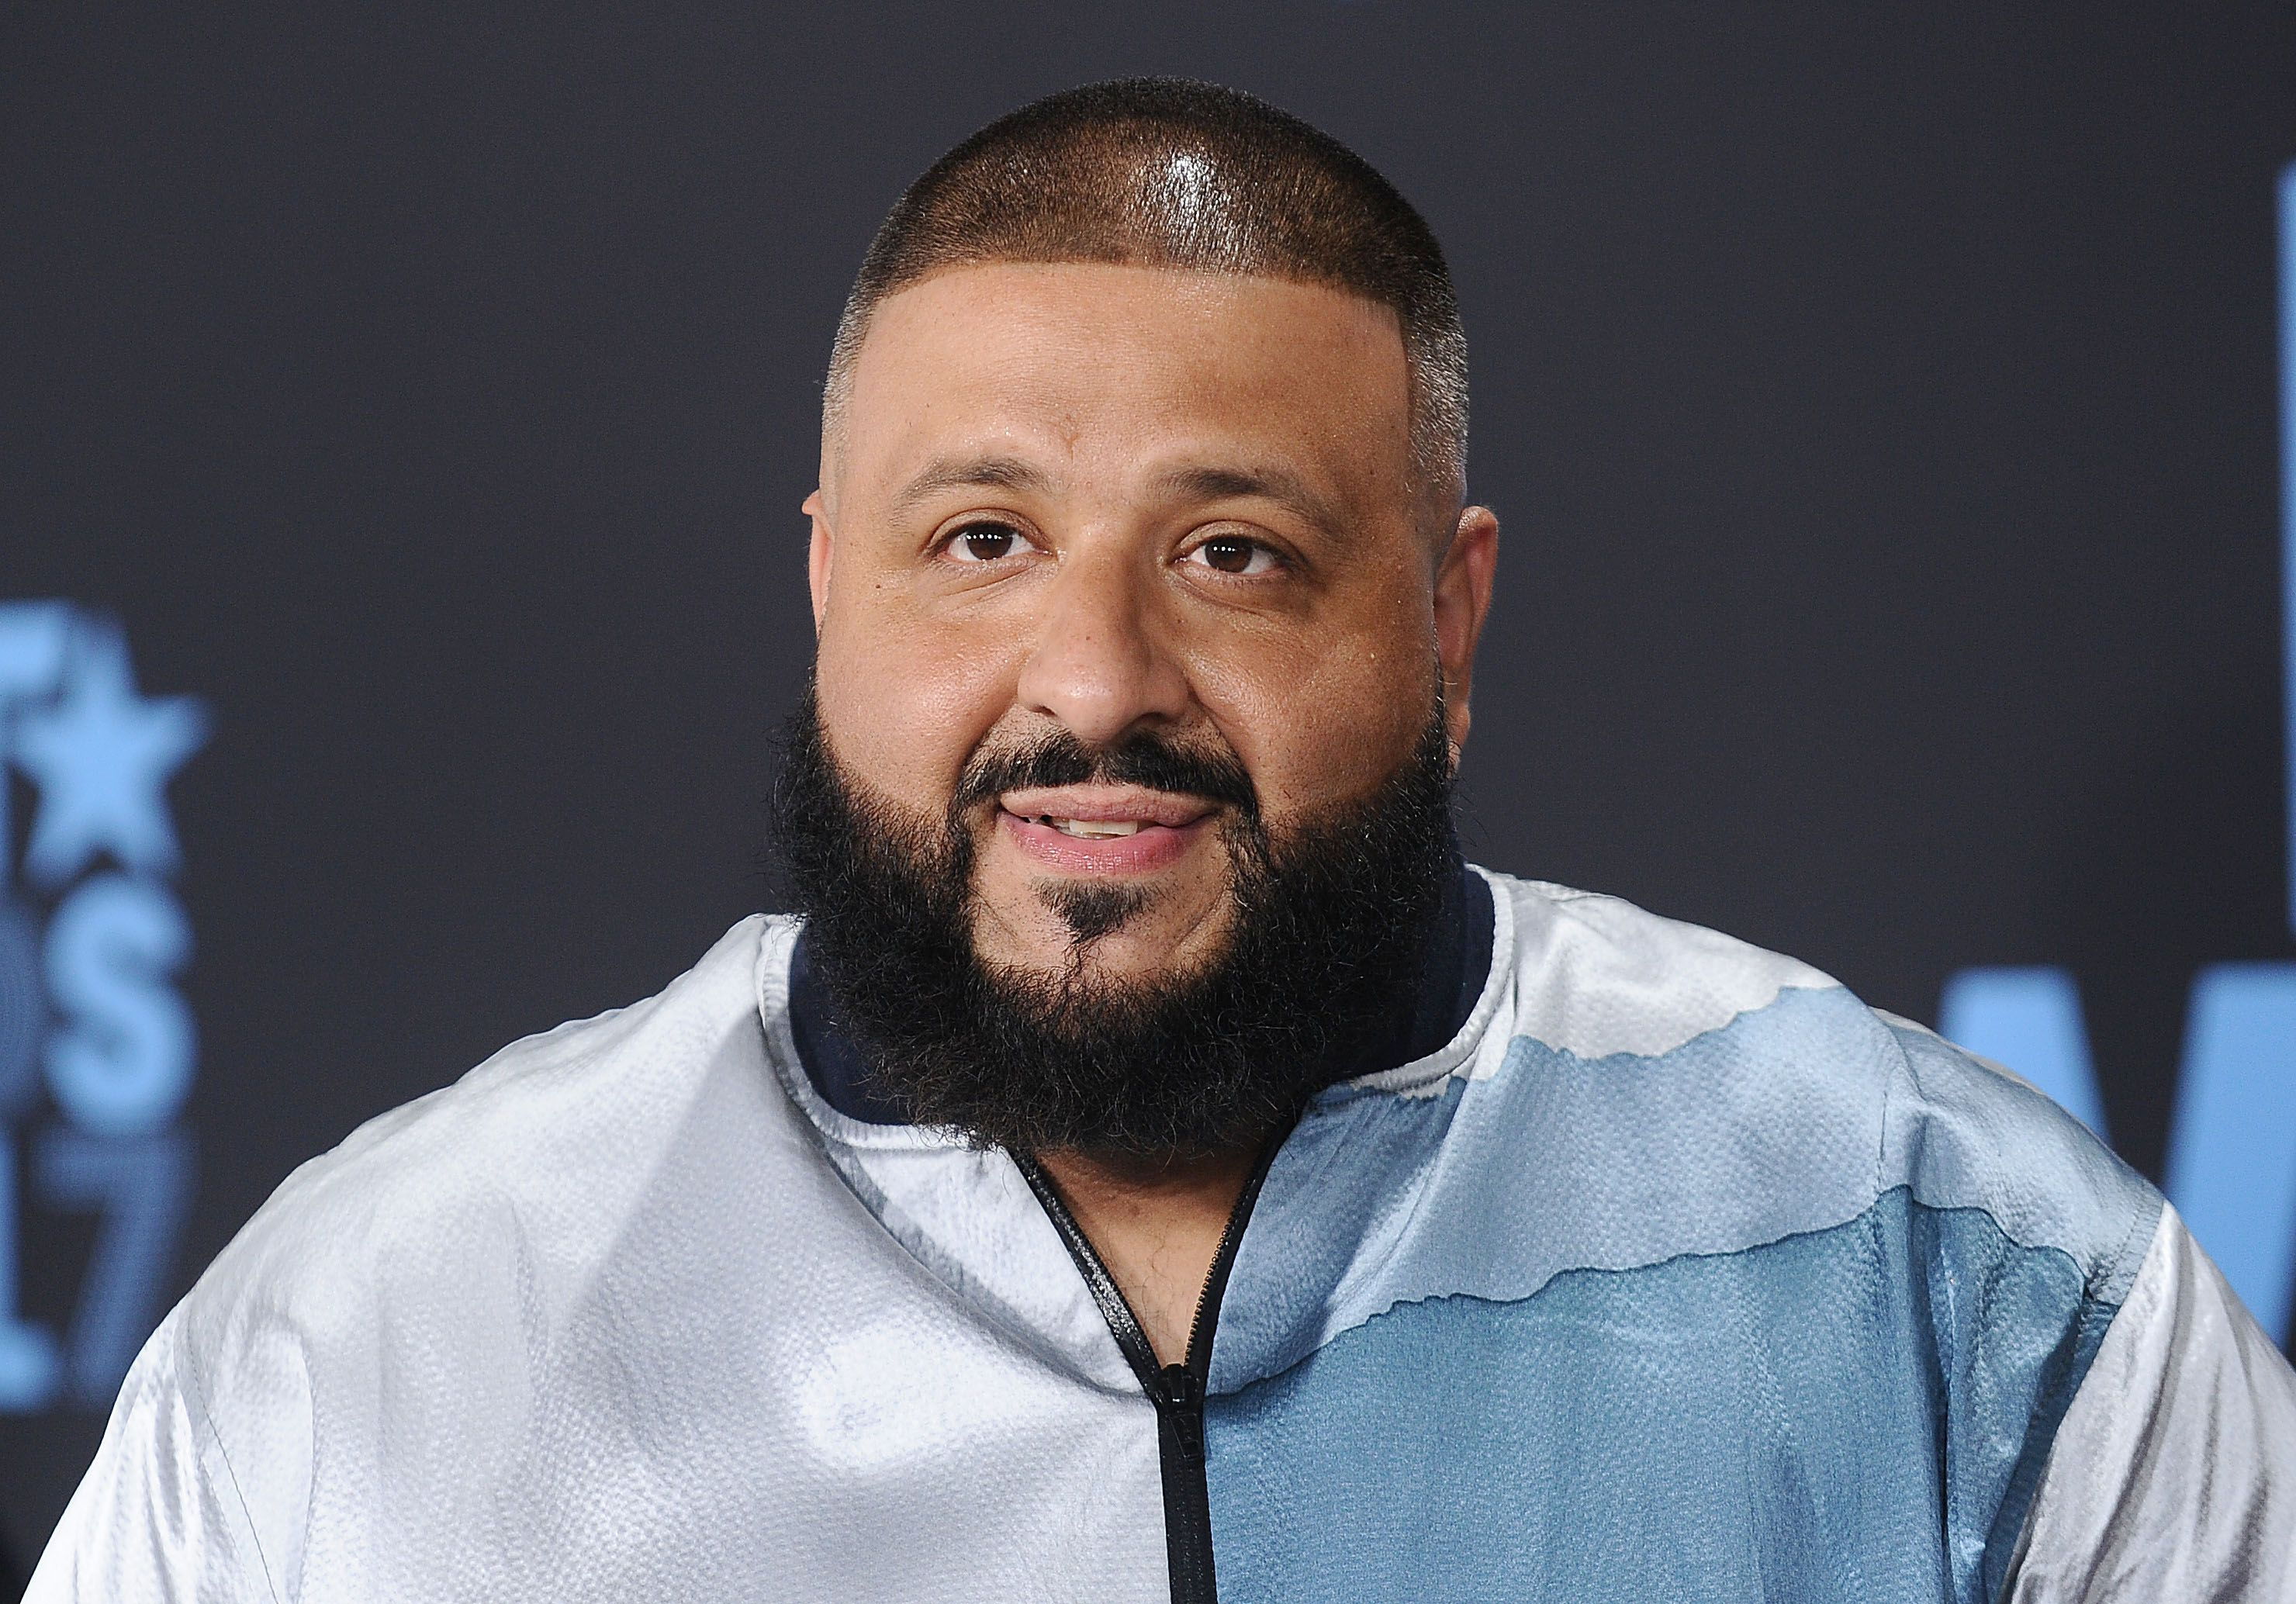 DJ Khaled attending the BET Awards on June 25, 2017 in Los Angeles. | Photo: Getty Images